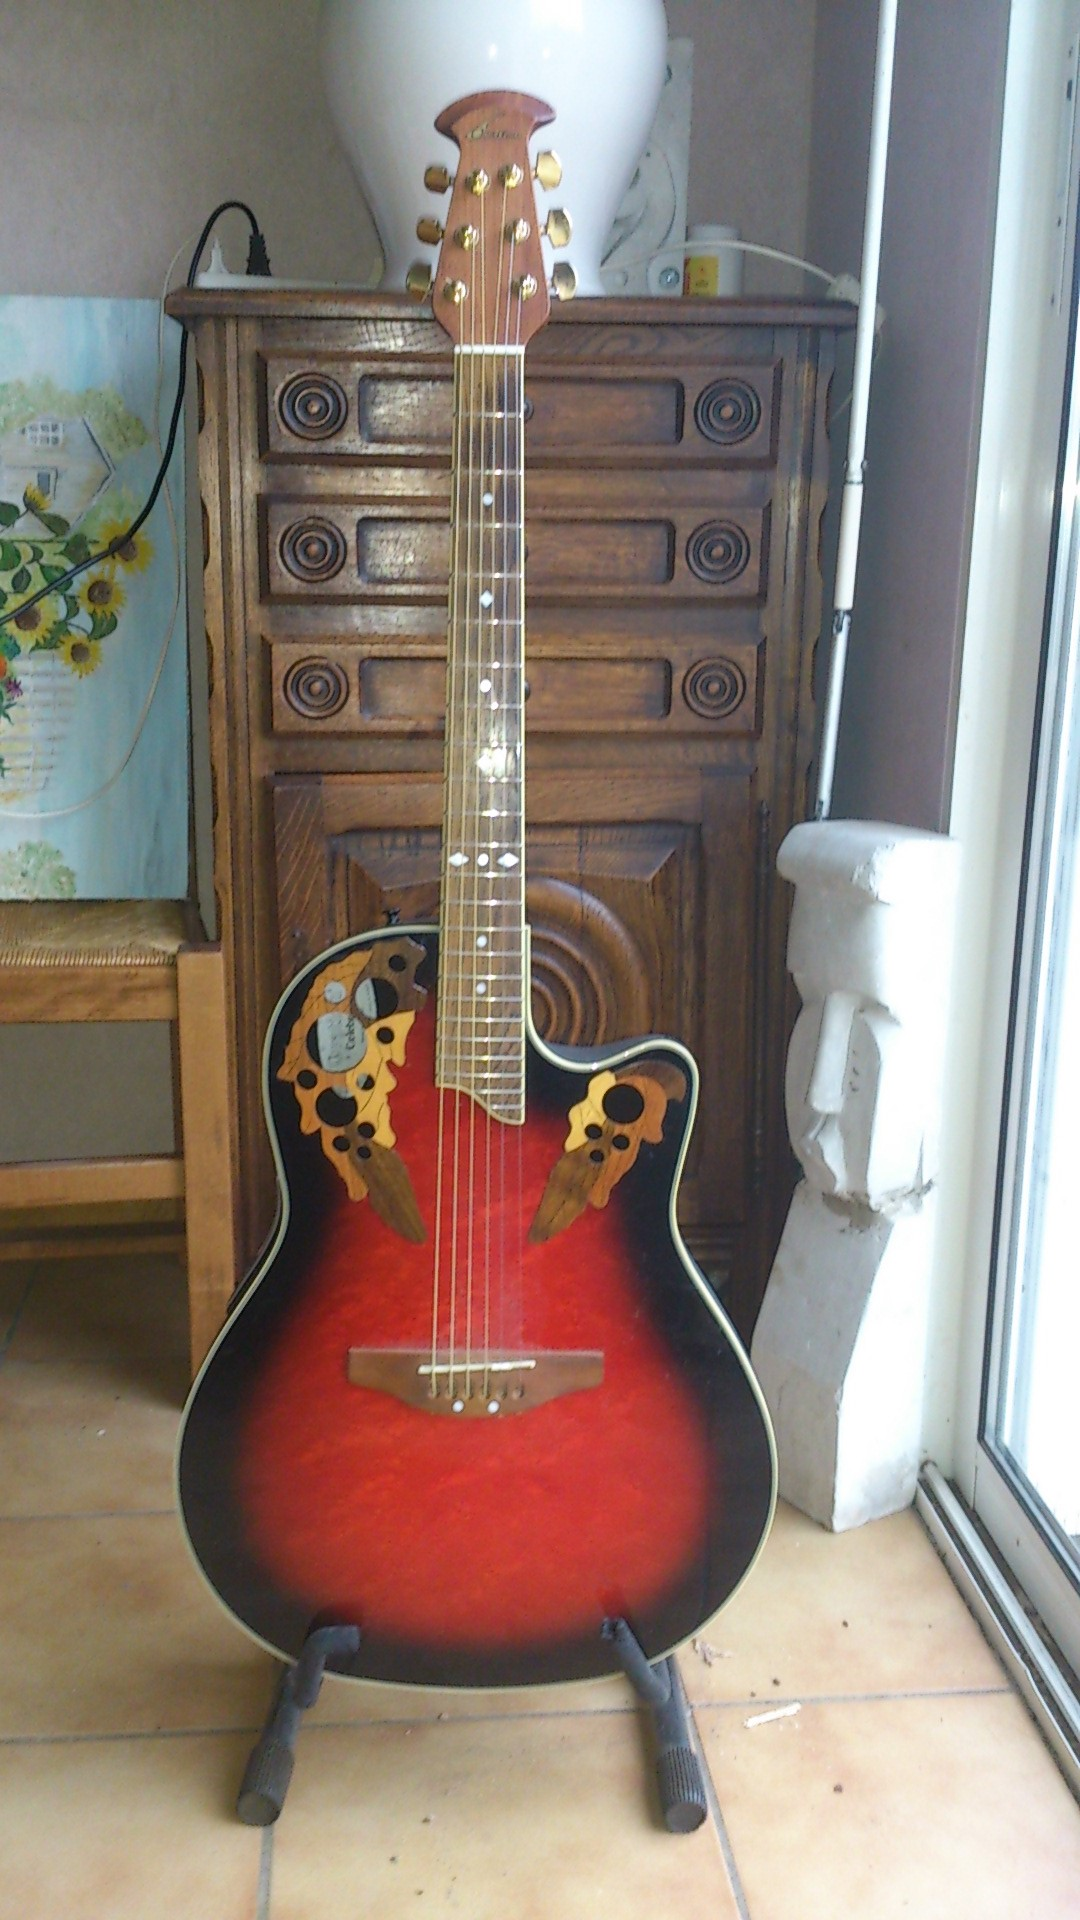 OVATION CELEBRITY DELUXE SERIES acoustic guitars